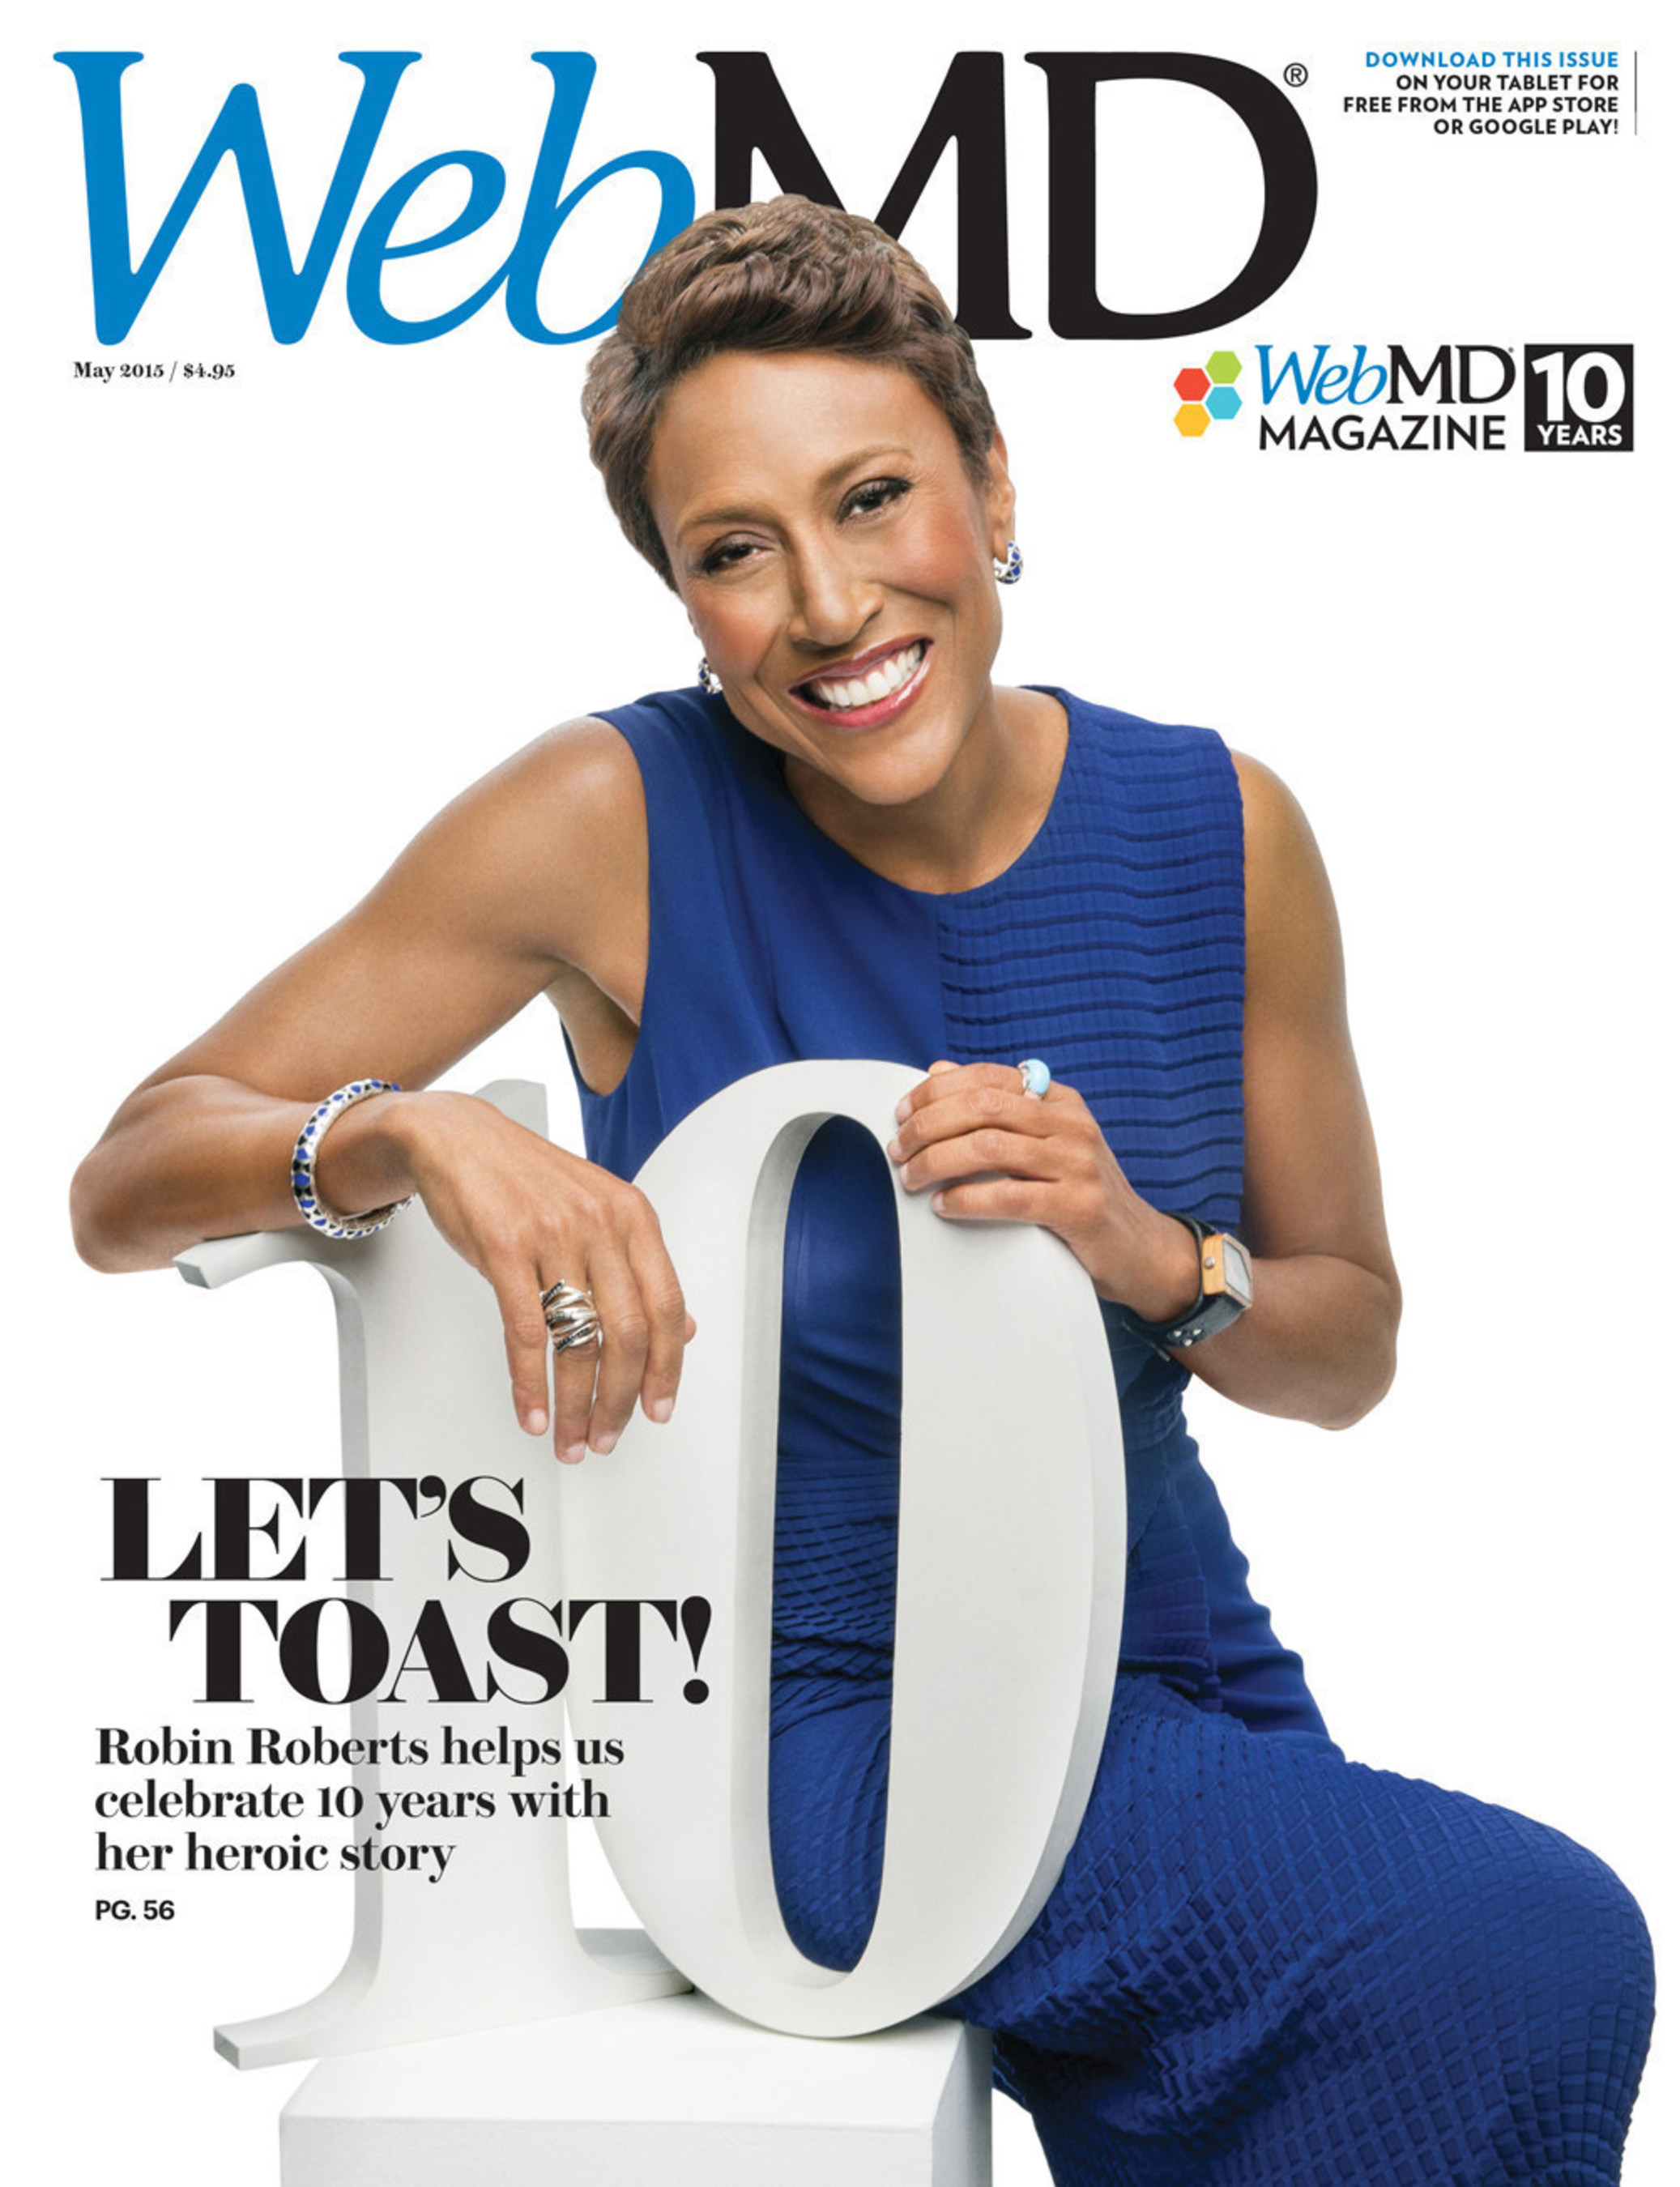 WebMD Magazine Celebrates a Decade of Health and Wellness in 10th Anniversary Issue